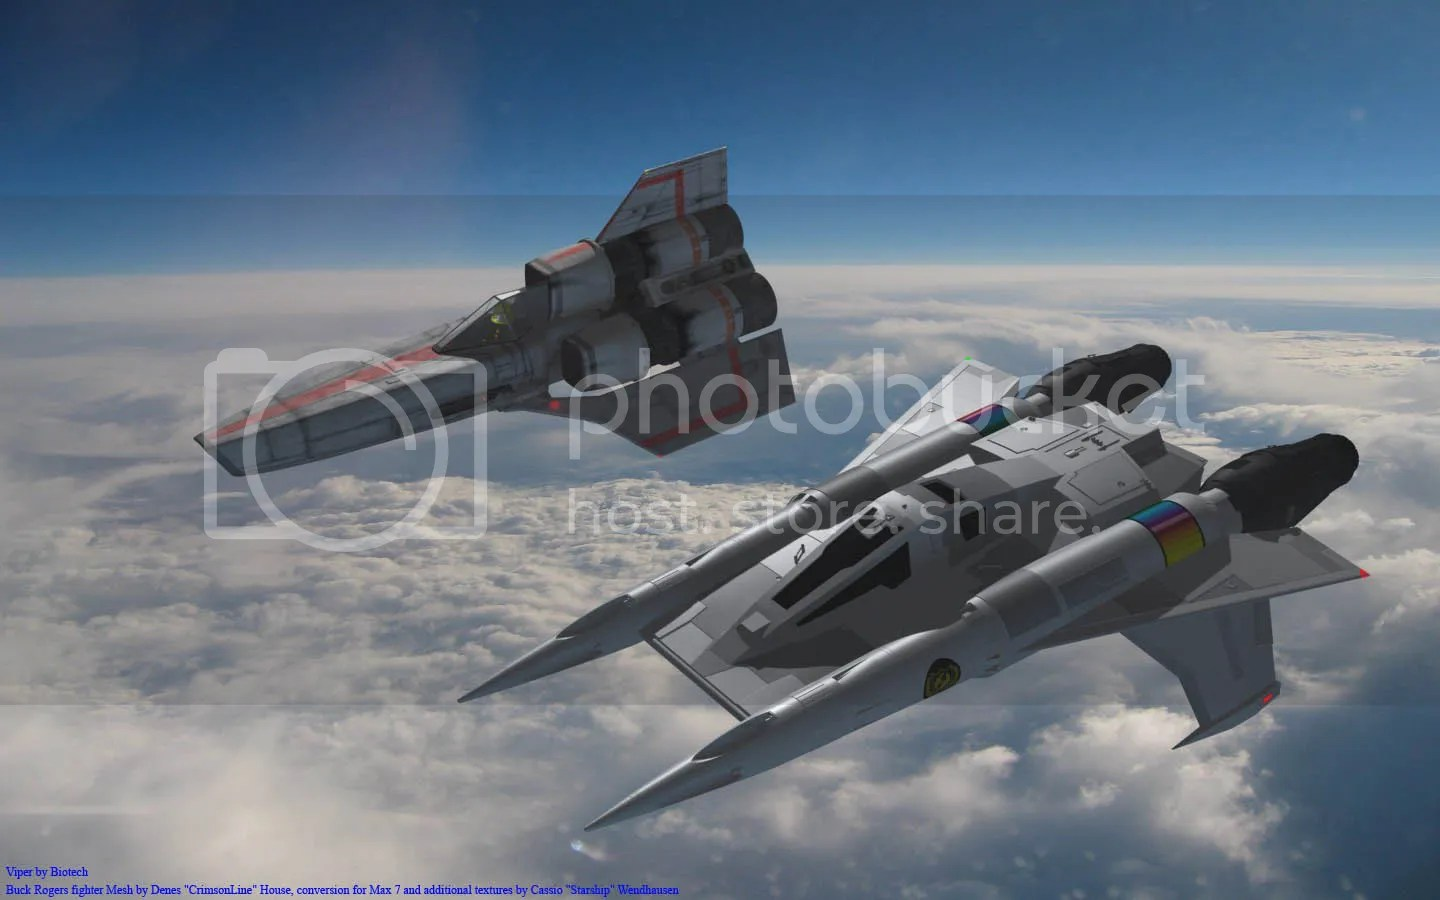 Space fighter craft